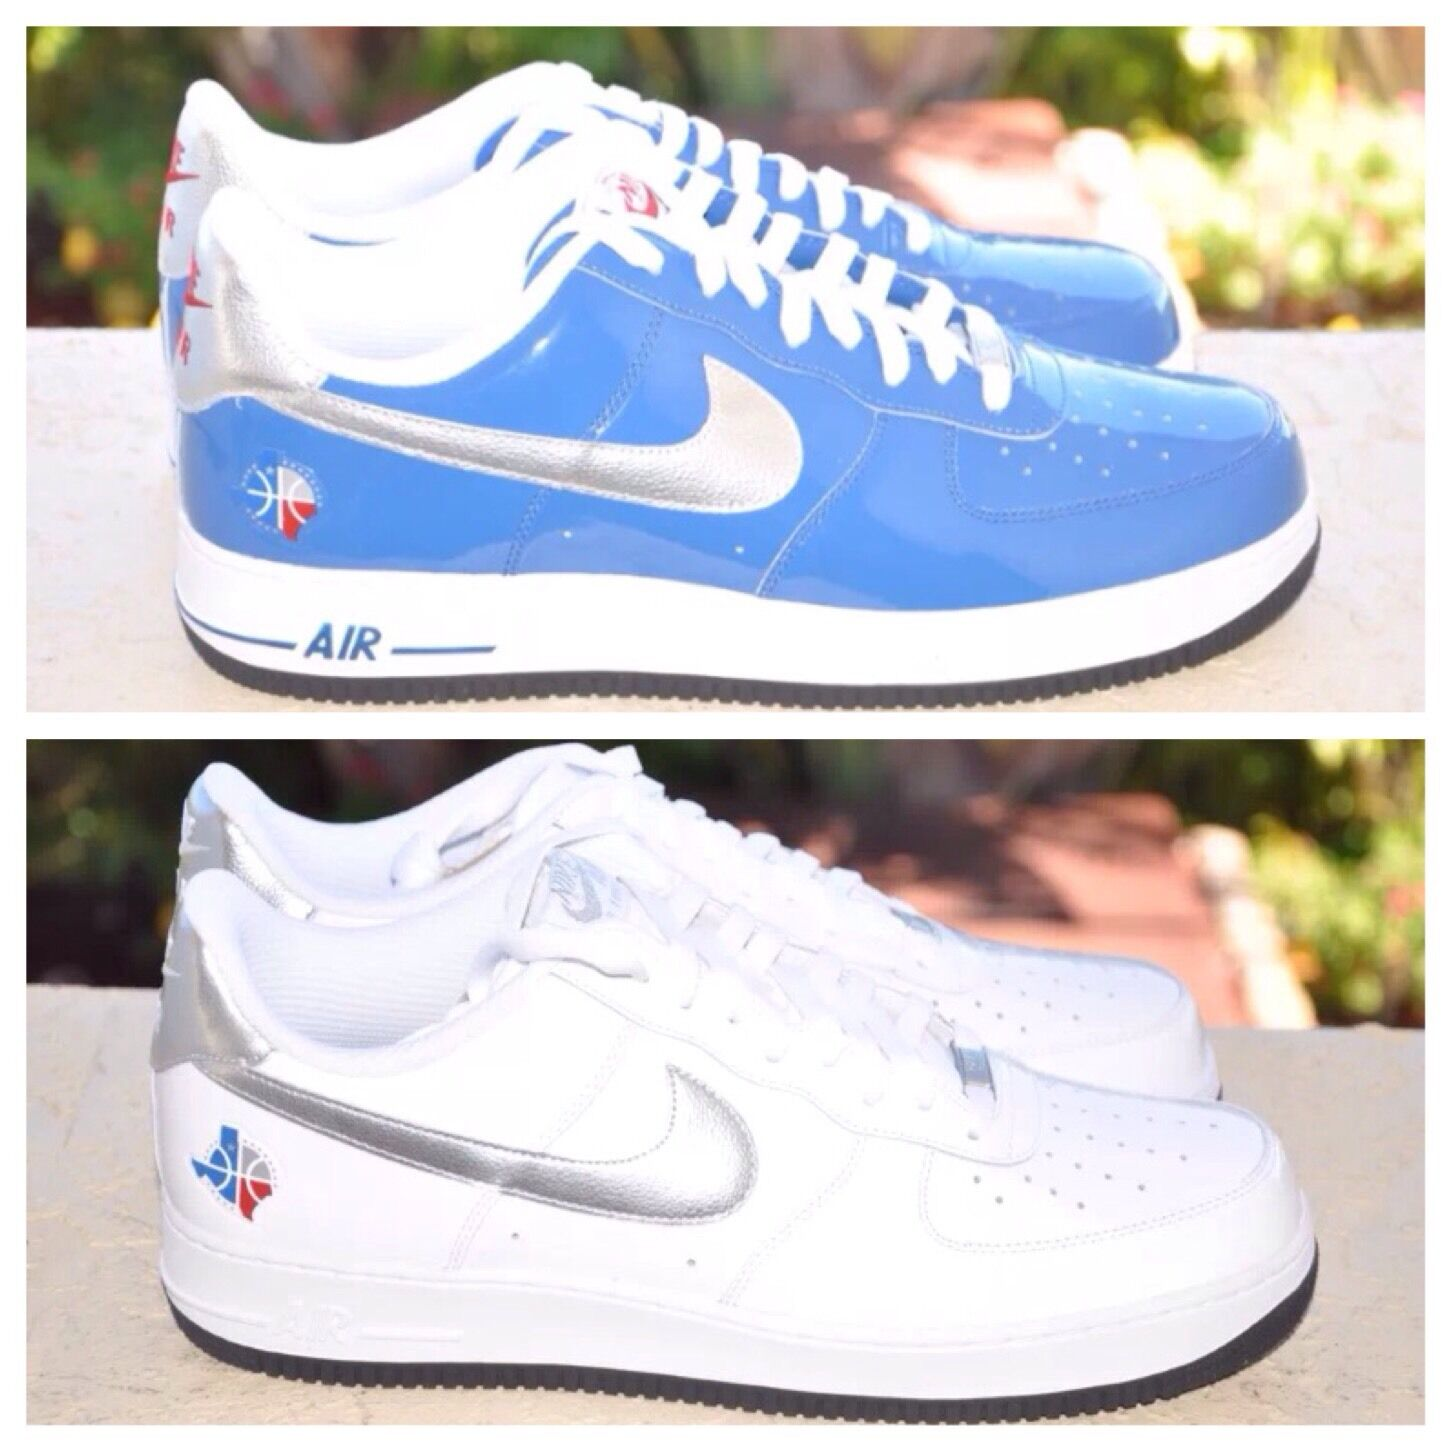 nike air force 1. all - star - 07 - ds packung blau - weißer ds - sz. 52405f